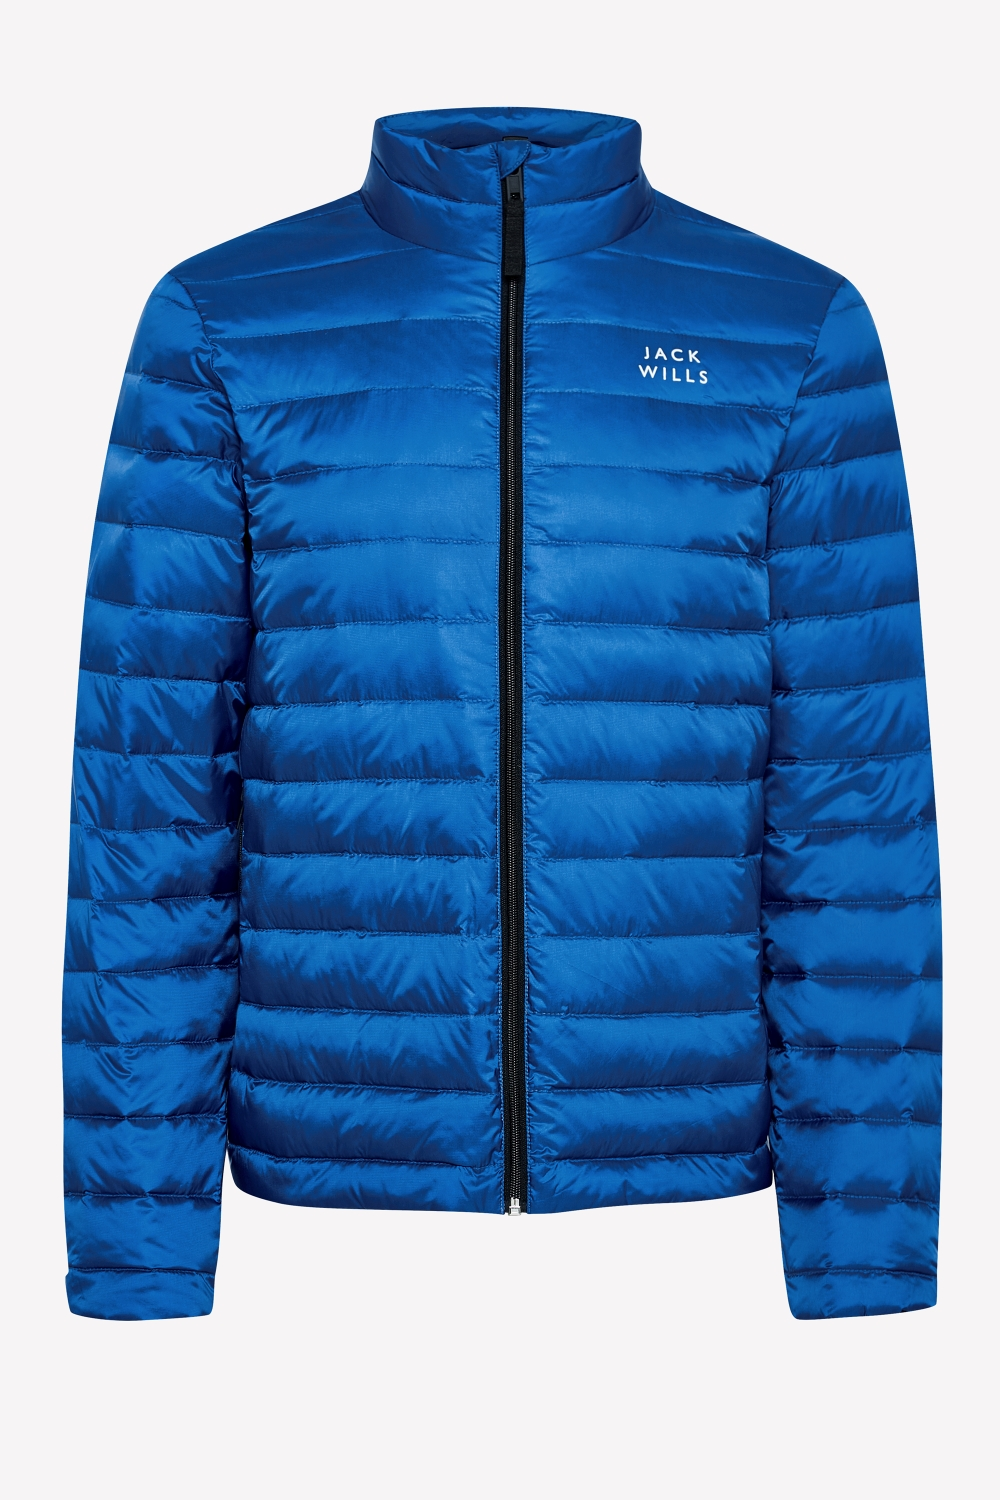 Jack Wills Cobalt NEVIS LIGHTWEIGHT DOWN JACKET